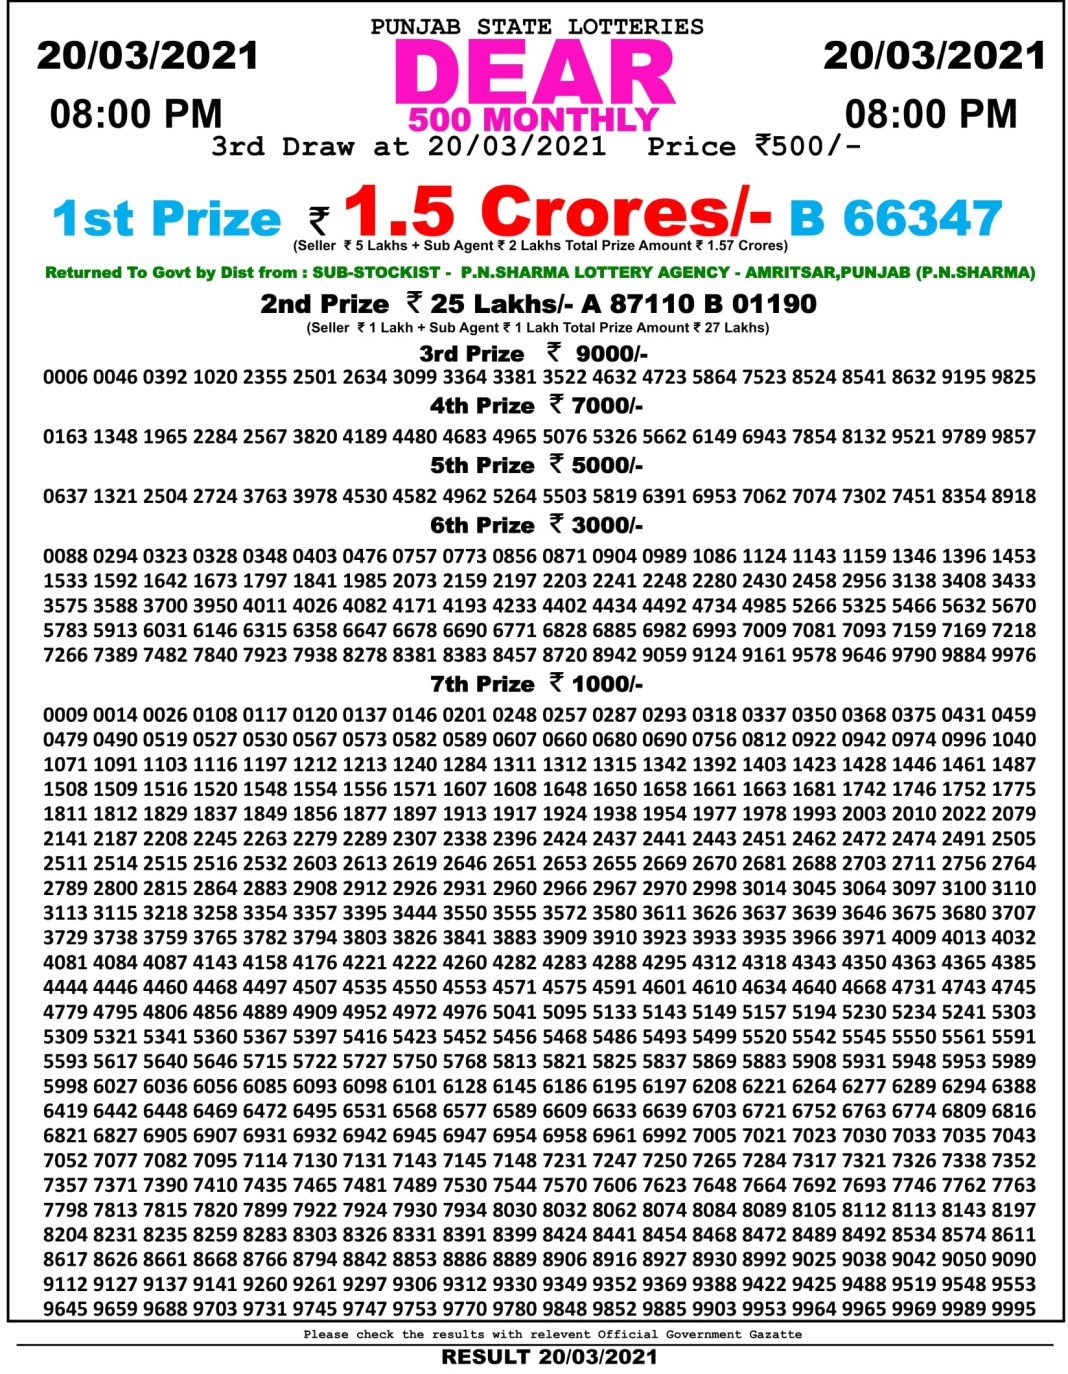 Punjab State Dear 500 Monthly Lottery Result 8 PM 20.3.2021